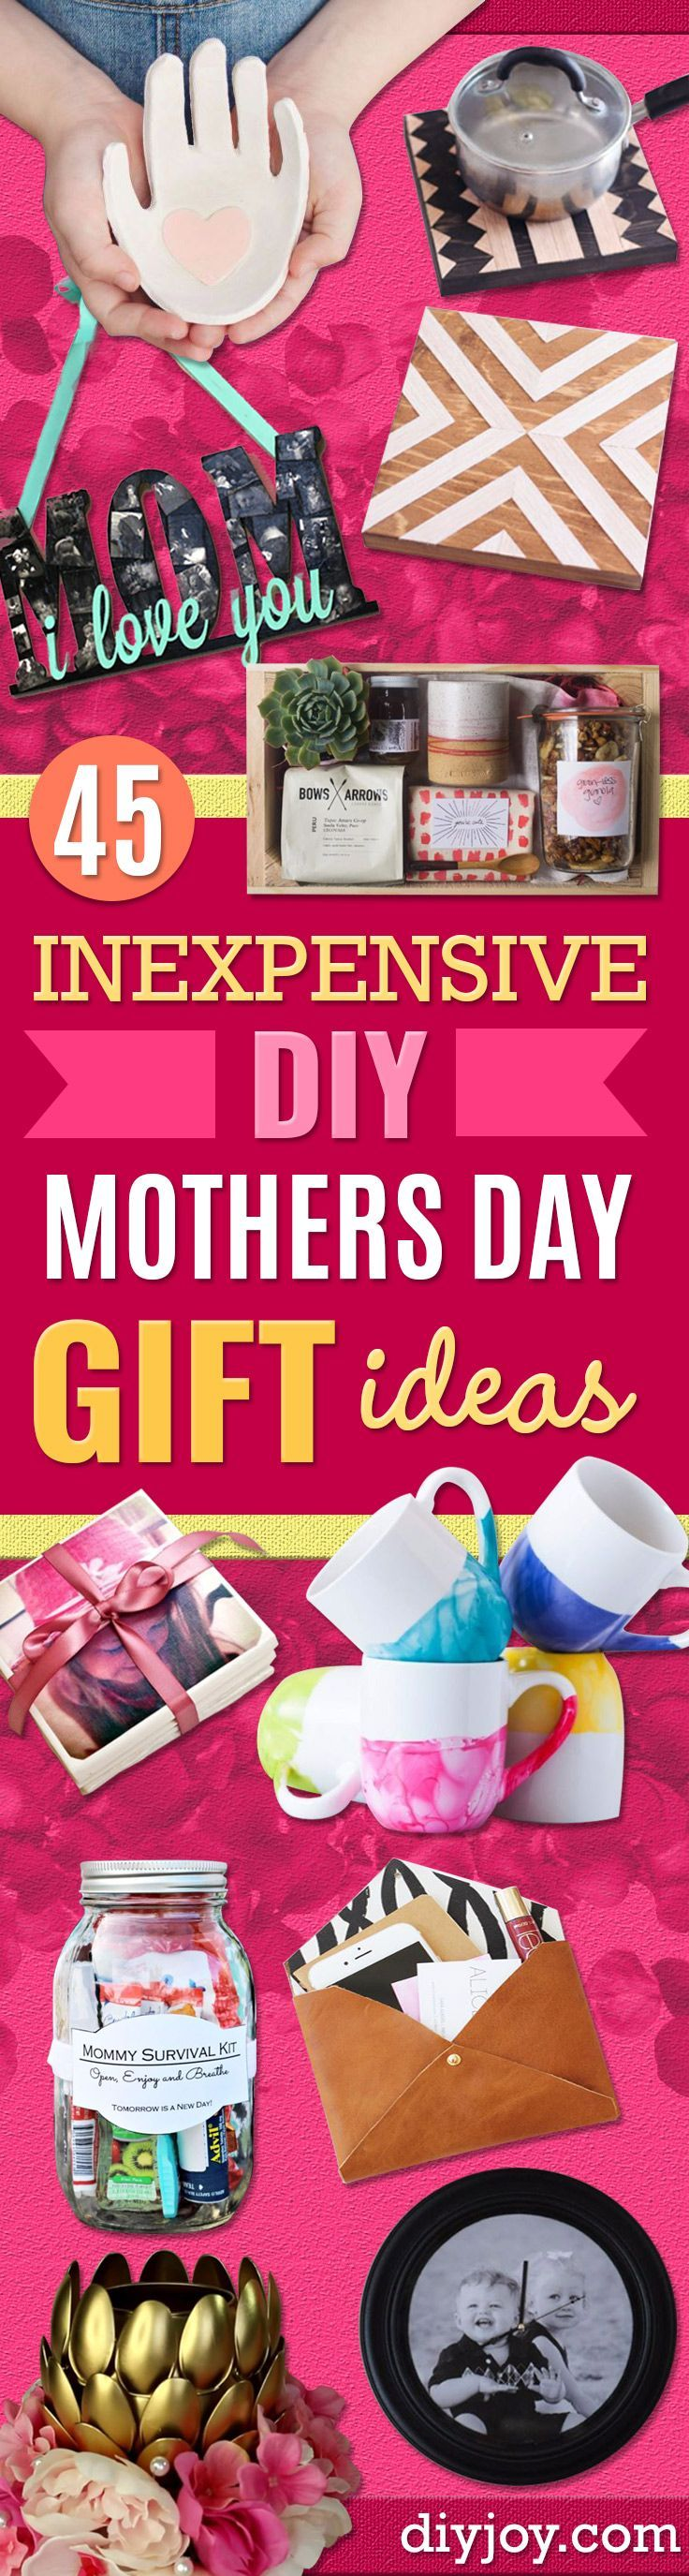 330 best images about cool diy ideas on pinterest crafts - Handmade mothers day presents ...